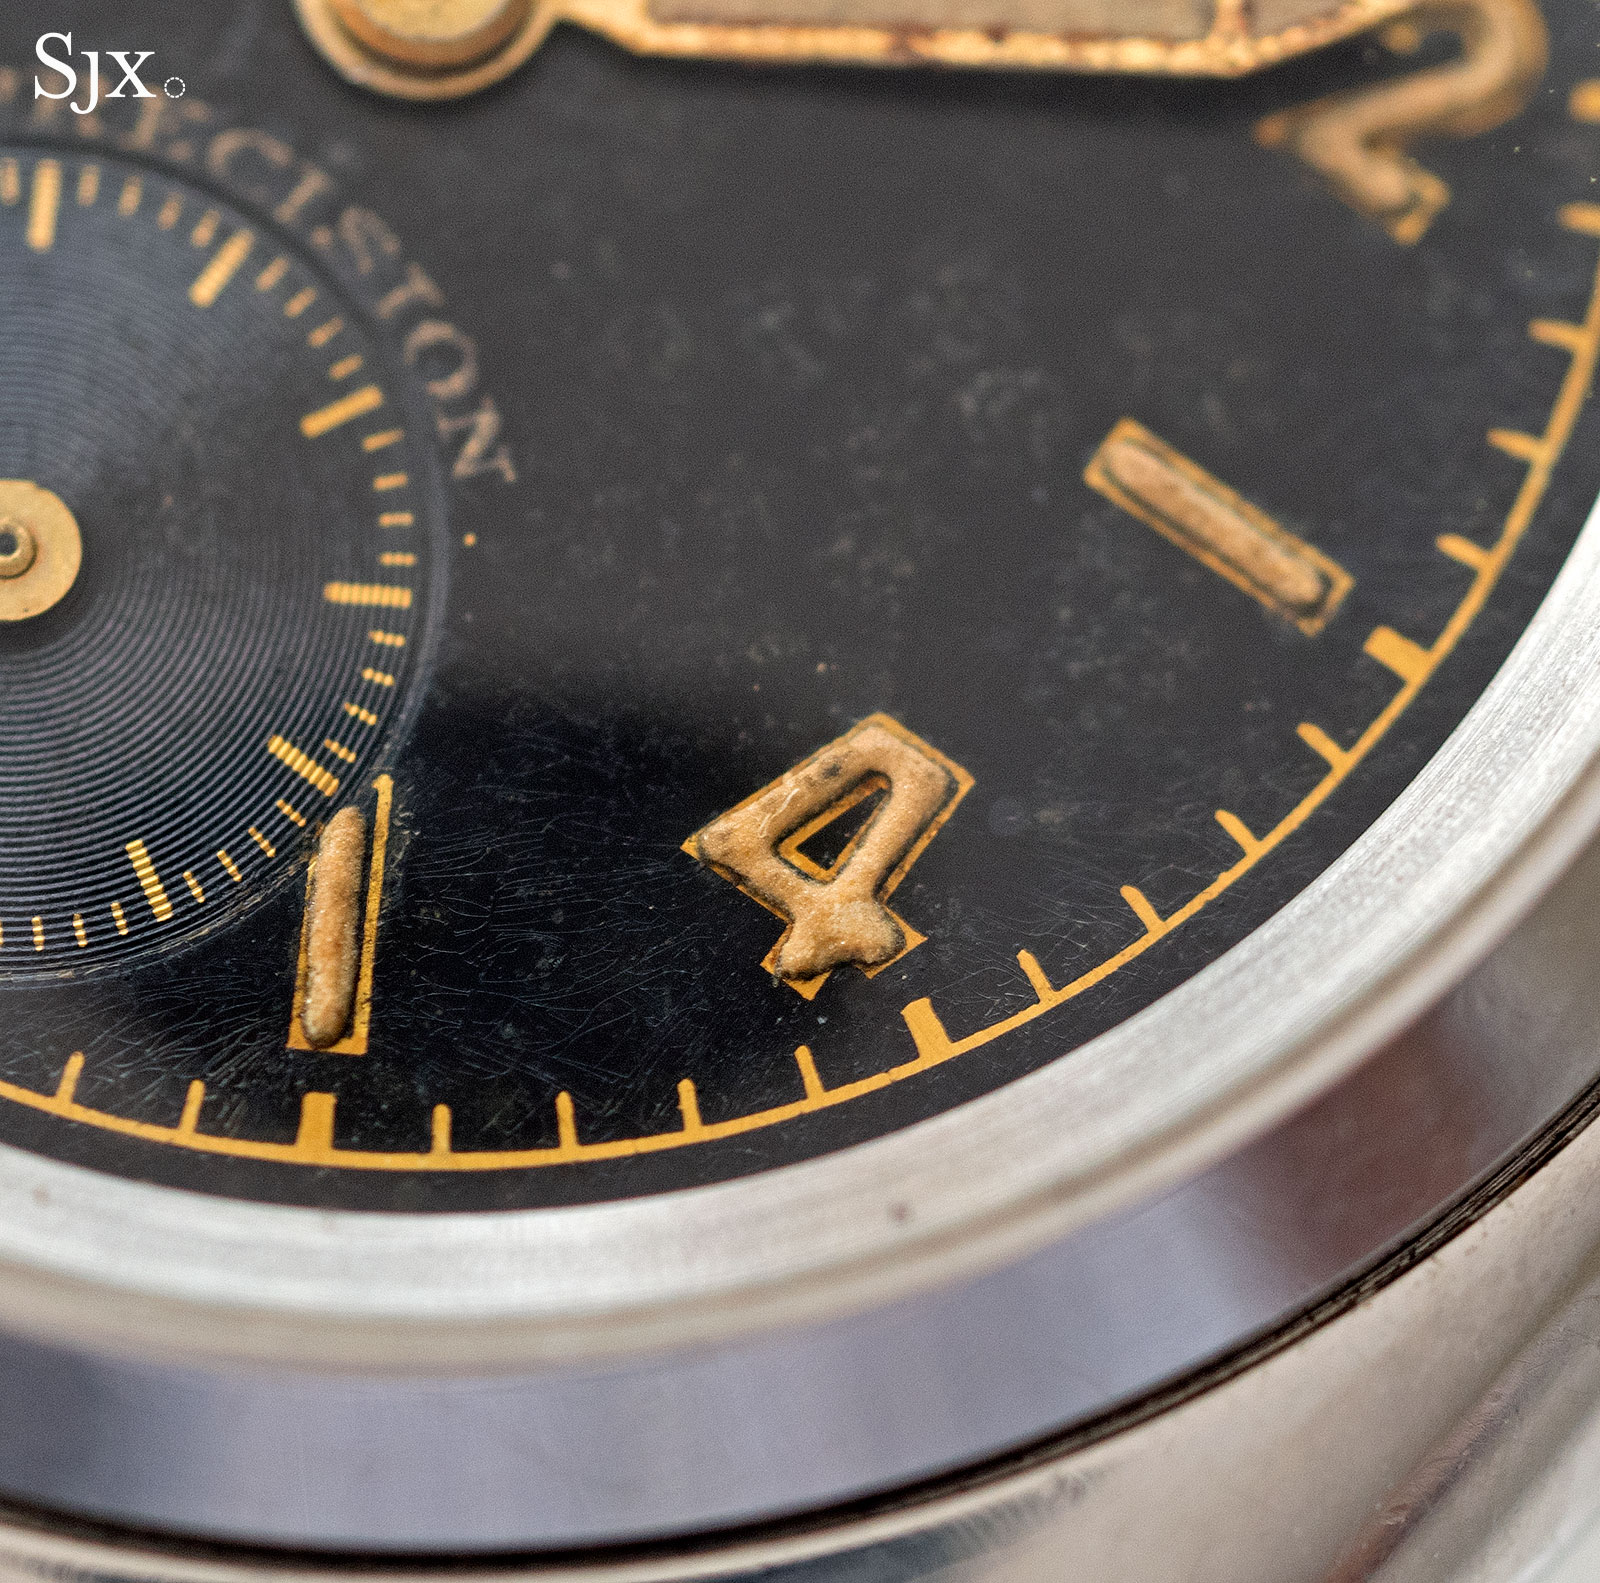 Rolex Oyster Imperial 4